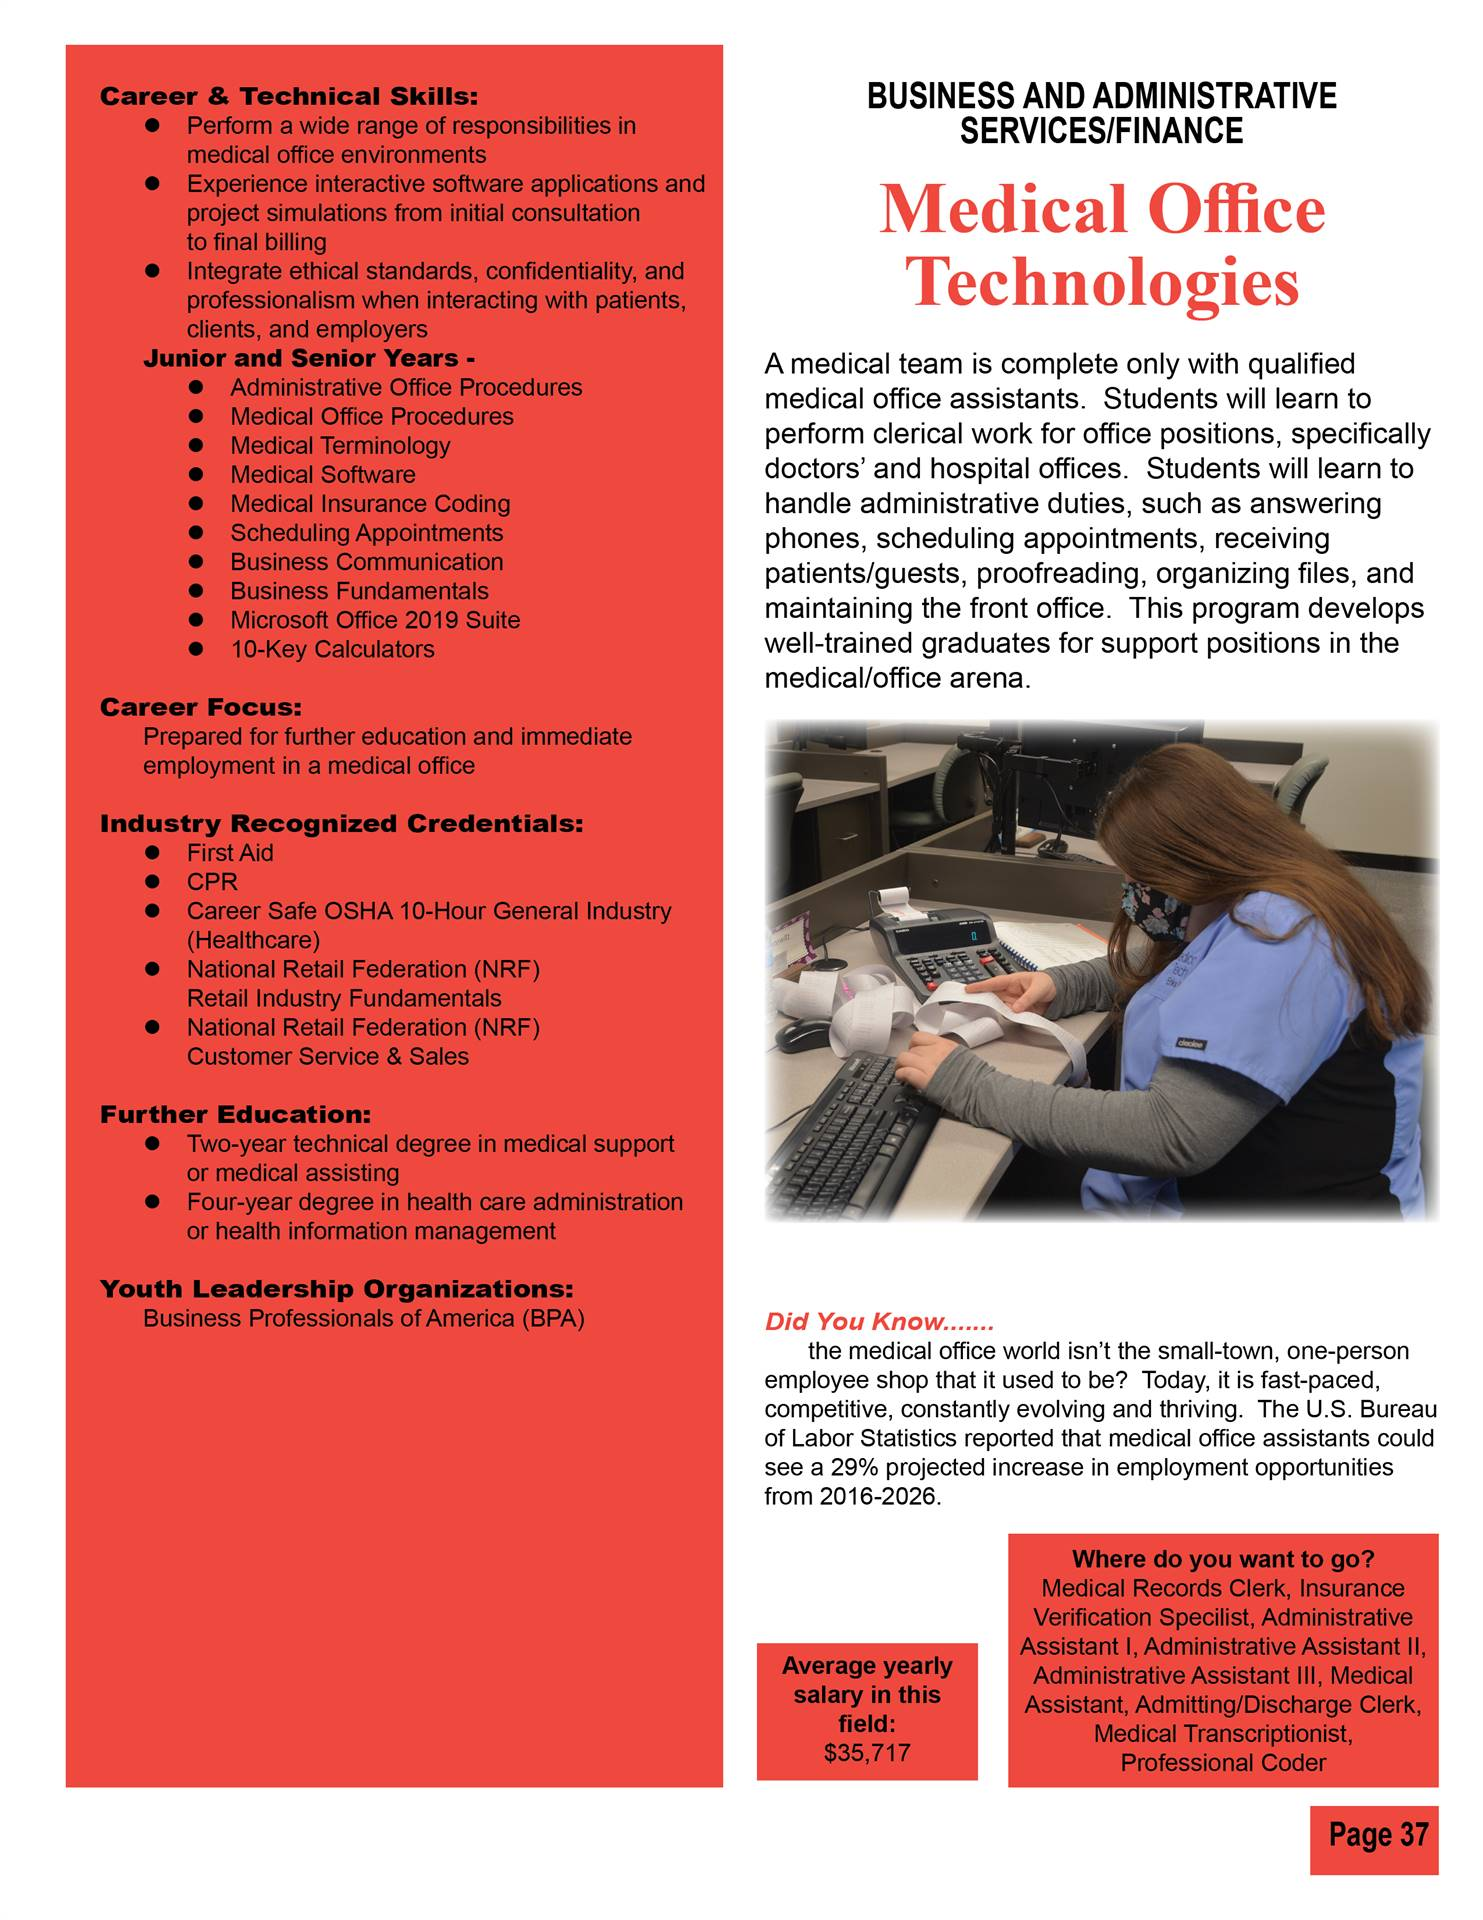 Medical Office Technologies